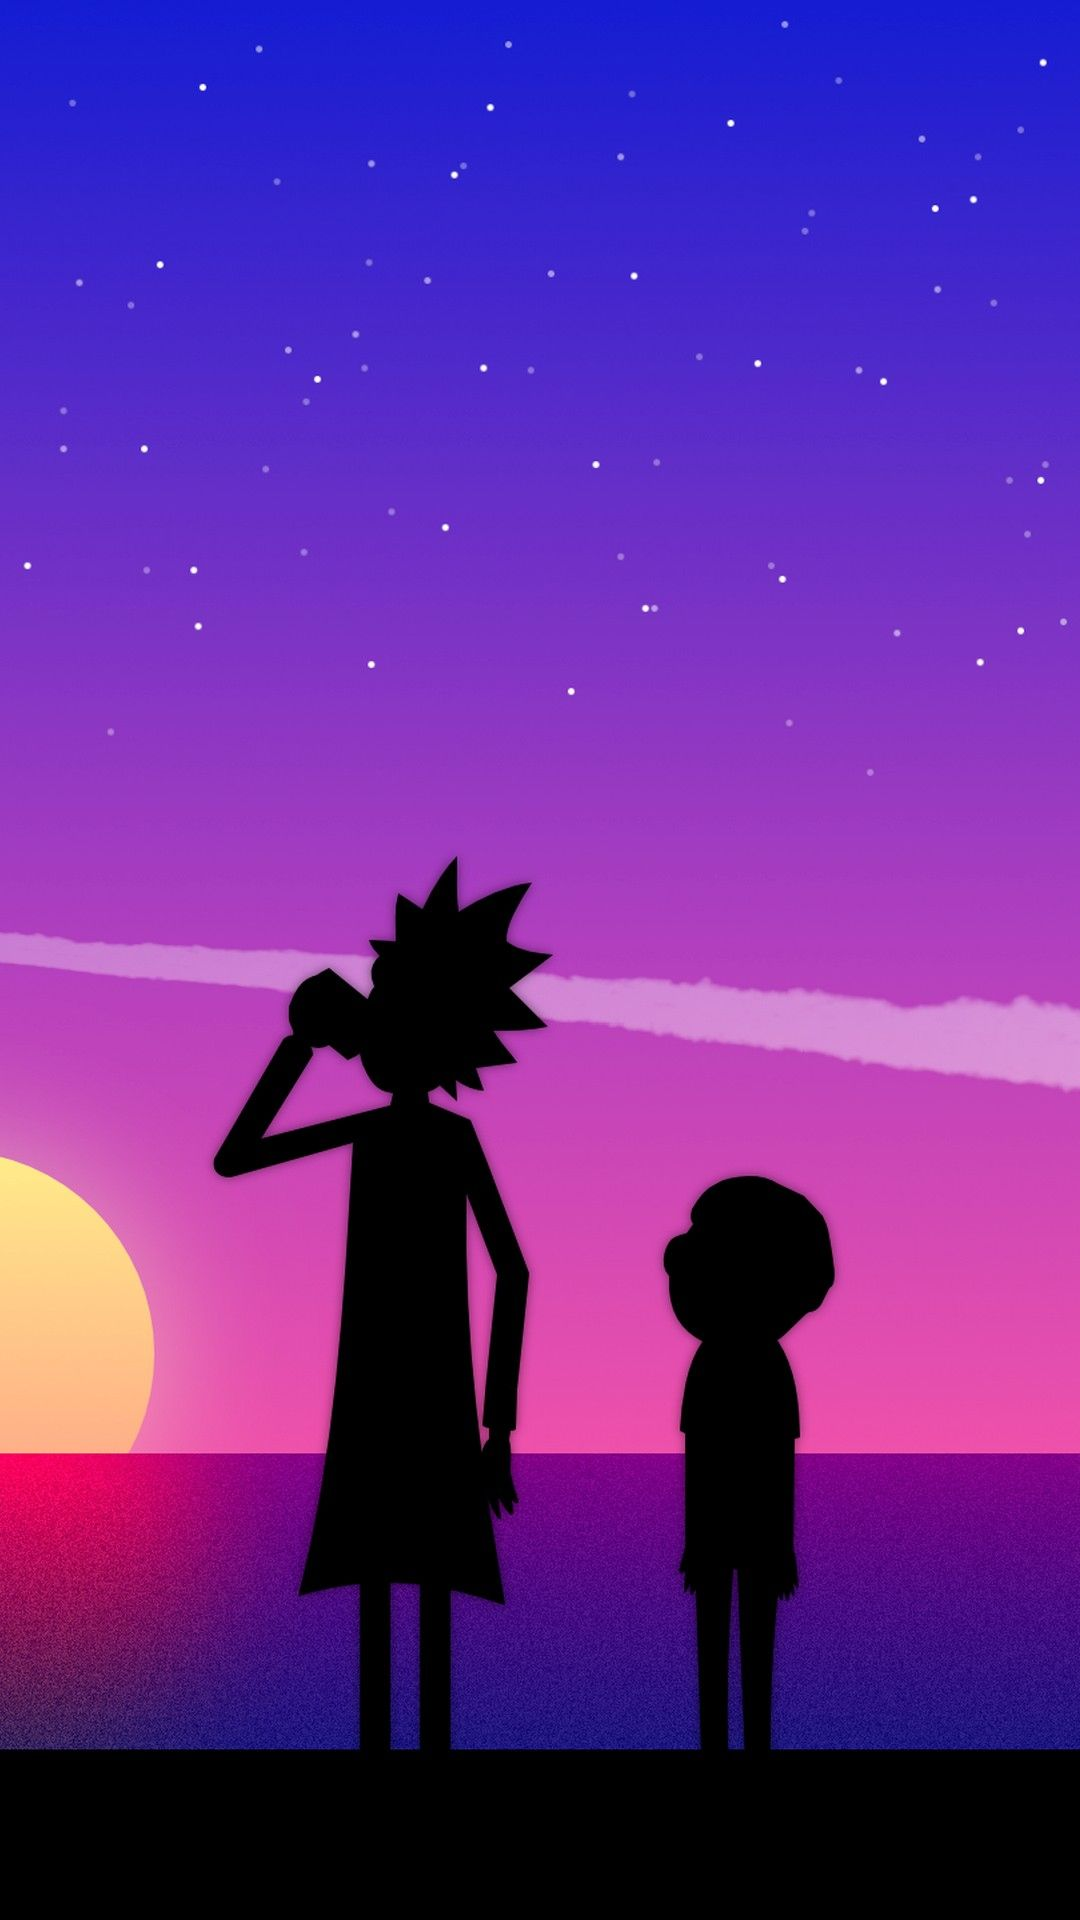 Rick And Morty Iphone 6 Wallpaper Hd Best Phone Wallpaper Hd Iphone Wallpaper Rick And Morty Rick And Morty Wallpapers Rick And Morty